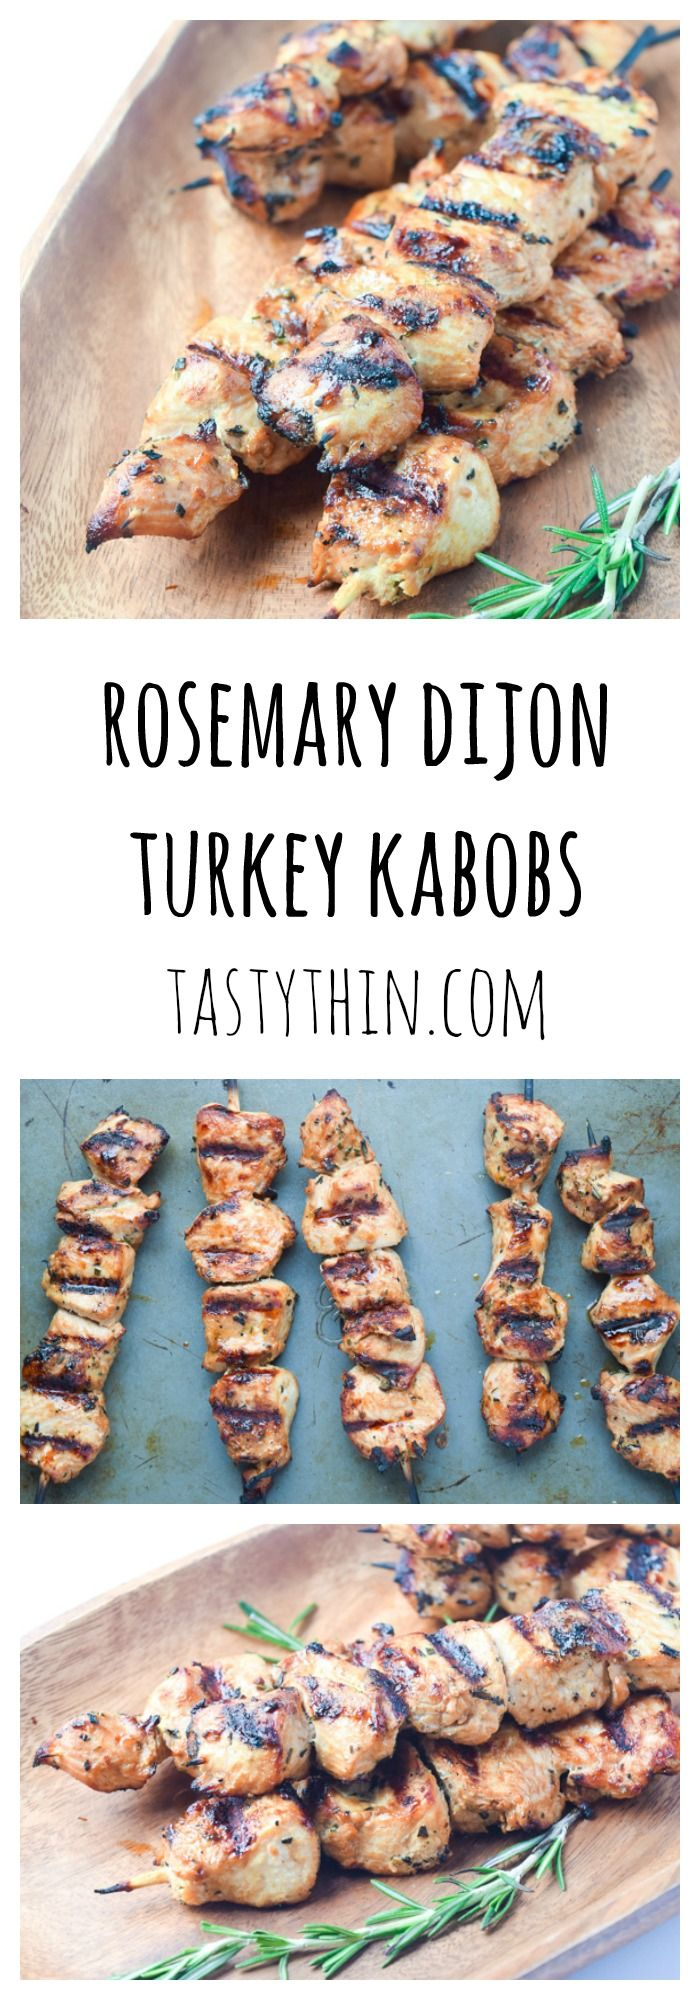 Rosemary Dijon Turkey Kabobs - a fresh tangy marinade is the perfect compliment to these grilled turkey tenderloin kabobs.   tastythin.com